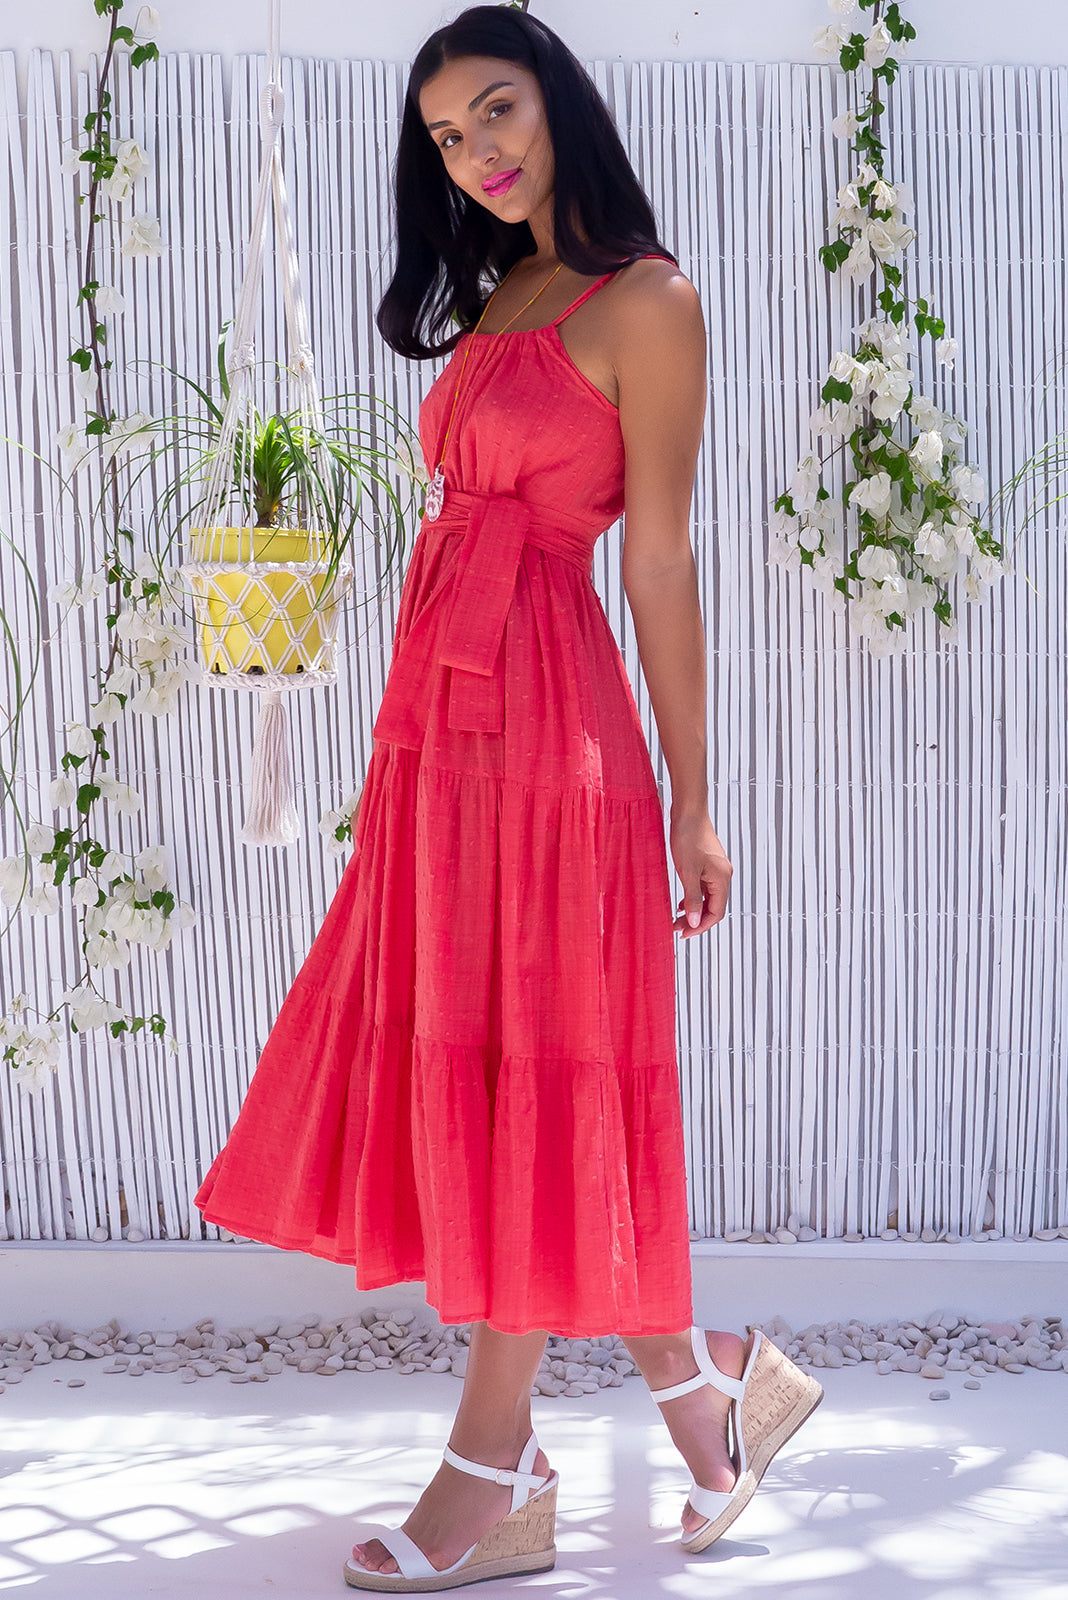 The vibrant red base adorned with a dobby spot texture is suited to every occasion, the Lulu Loves Watermelon Red Maxi Dress features an adjustable neckline, hidden pockets, 100% cotton and a tiered skirt for ultimate glam.